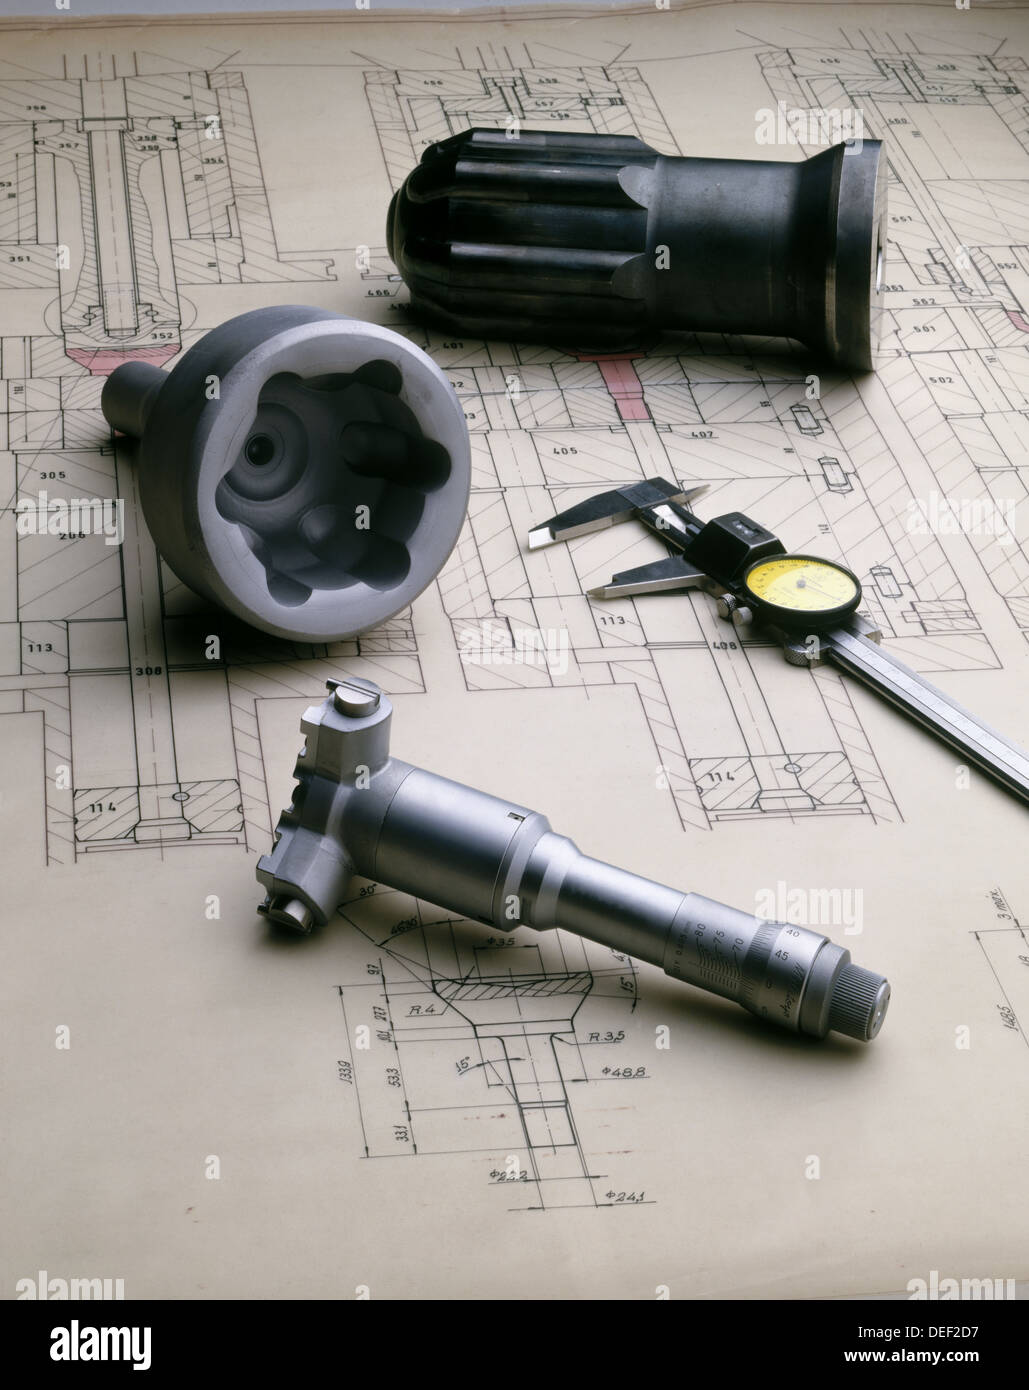 Blueprints and tools - Stock Image